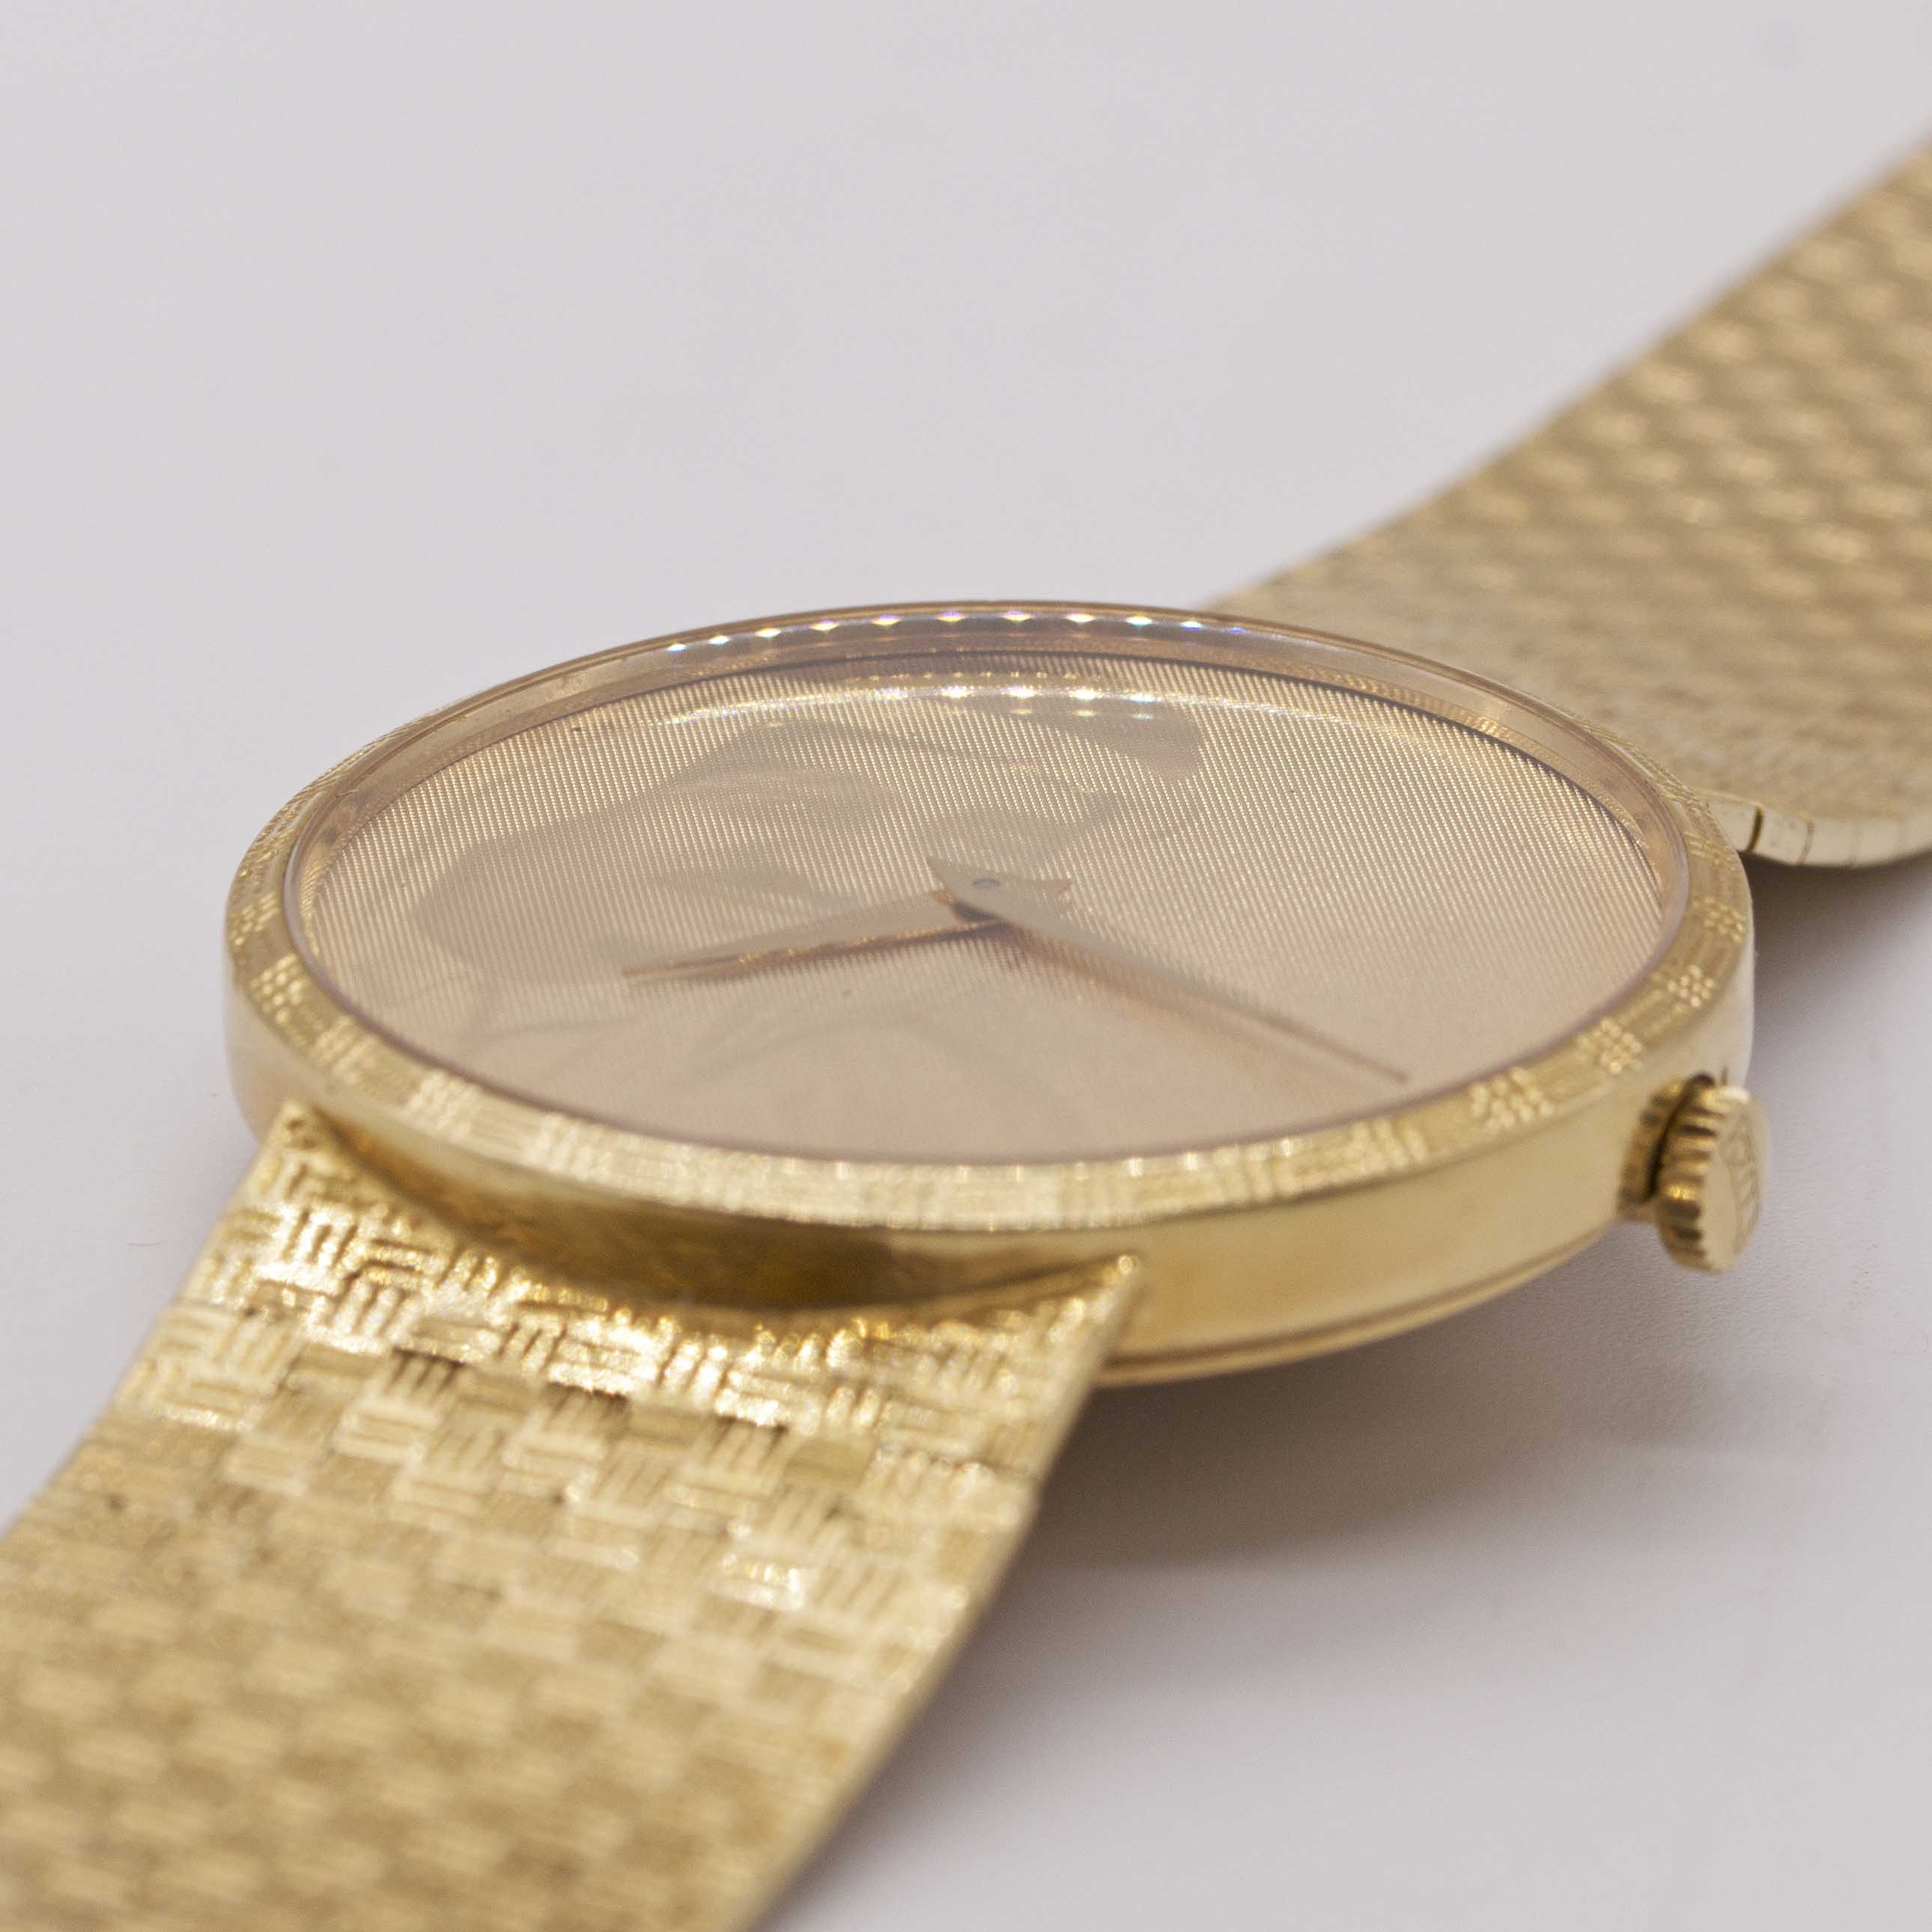 Lot 15 - A RARE GENTLEMAN'S 18K SOLID YELLOW GOLD CHOPARD AUTOMATIC BRACELET WATCH CIRCA 1980s, REF. 1038 1